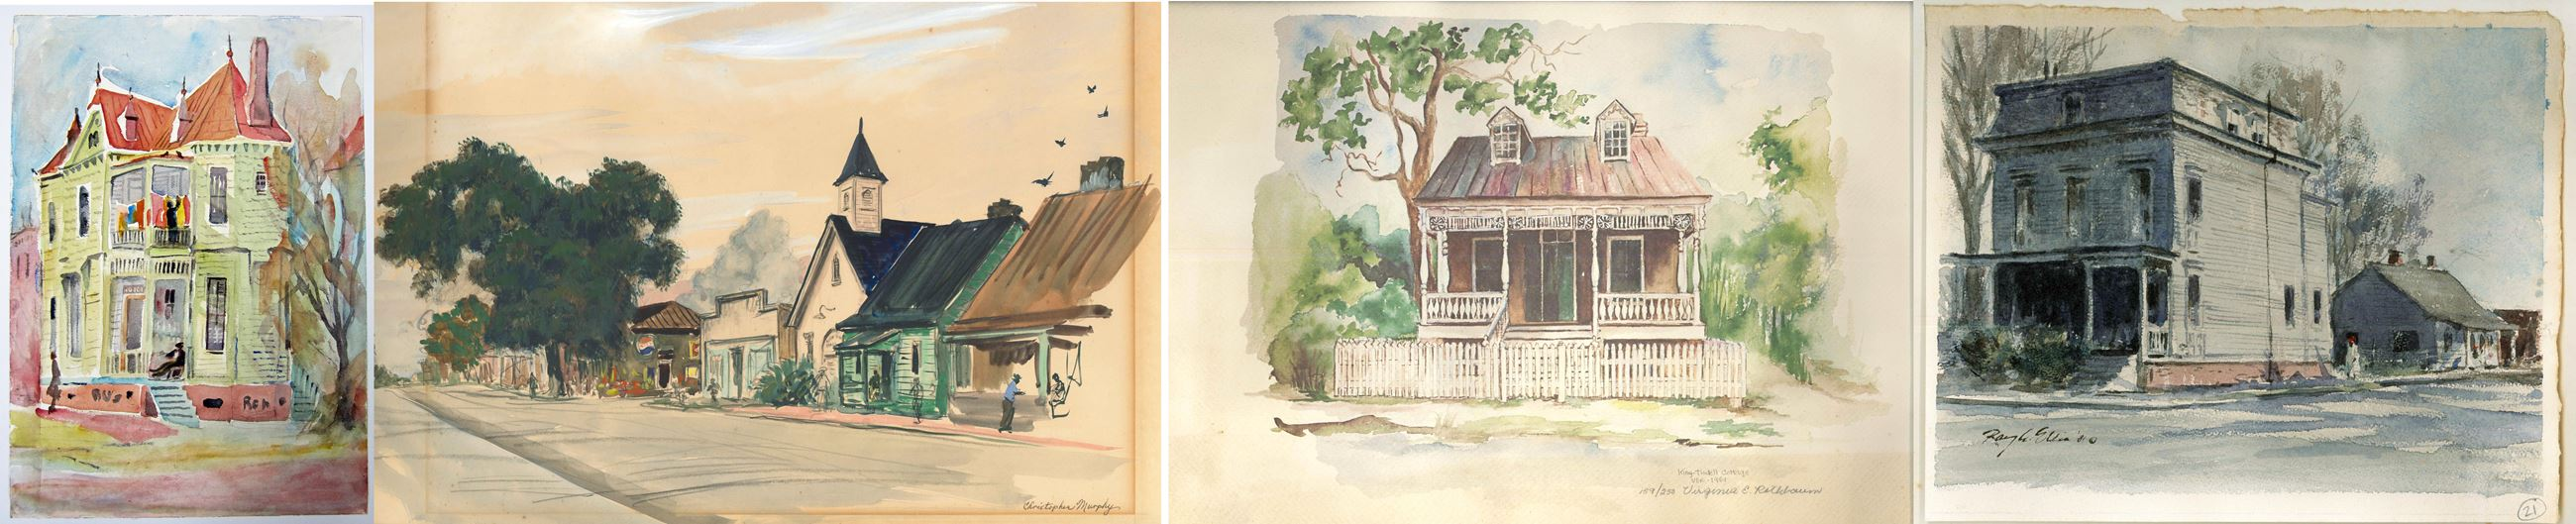 4 pieces of artwork